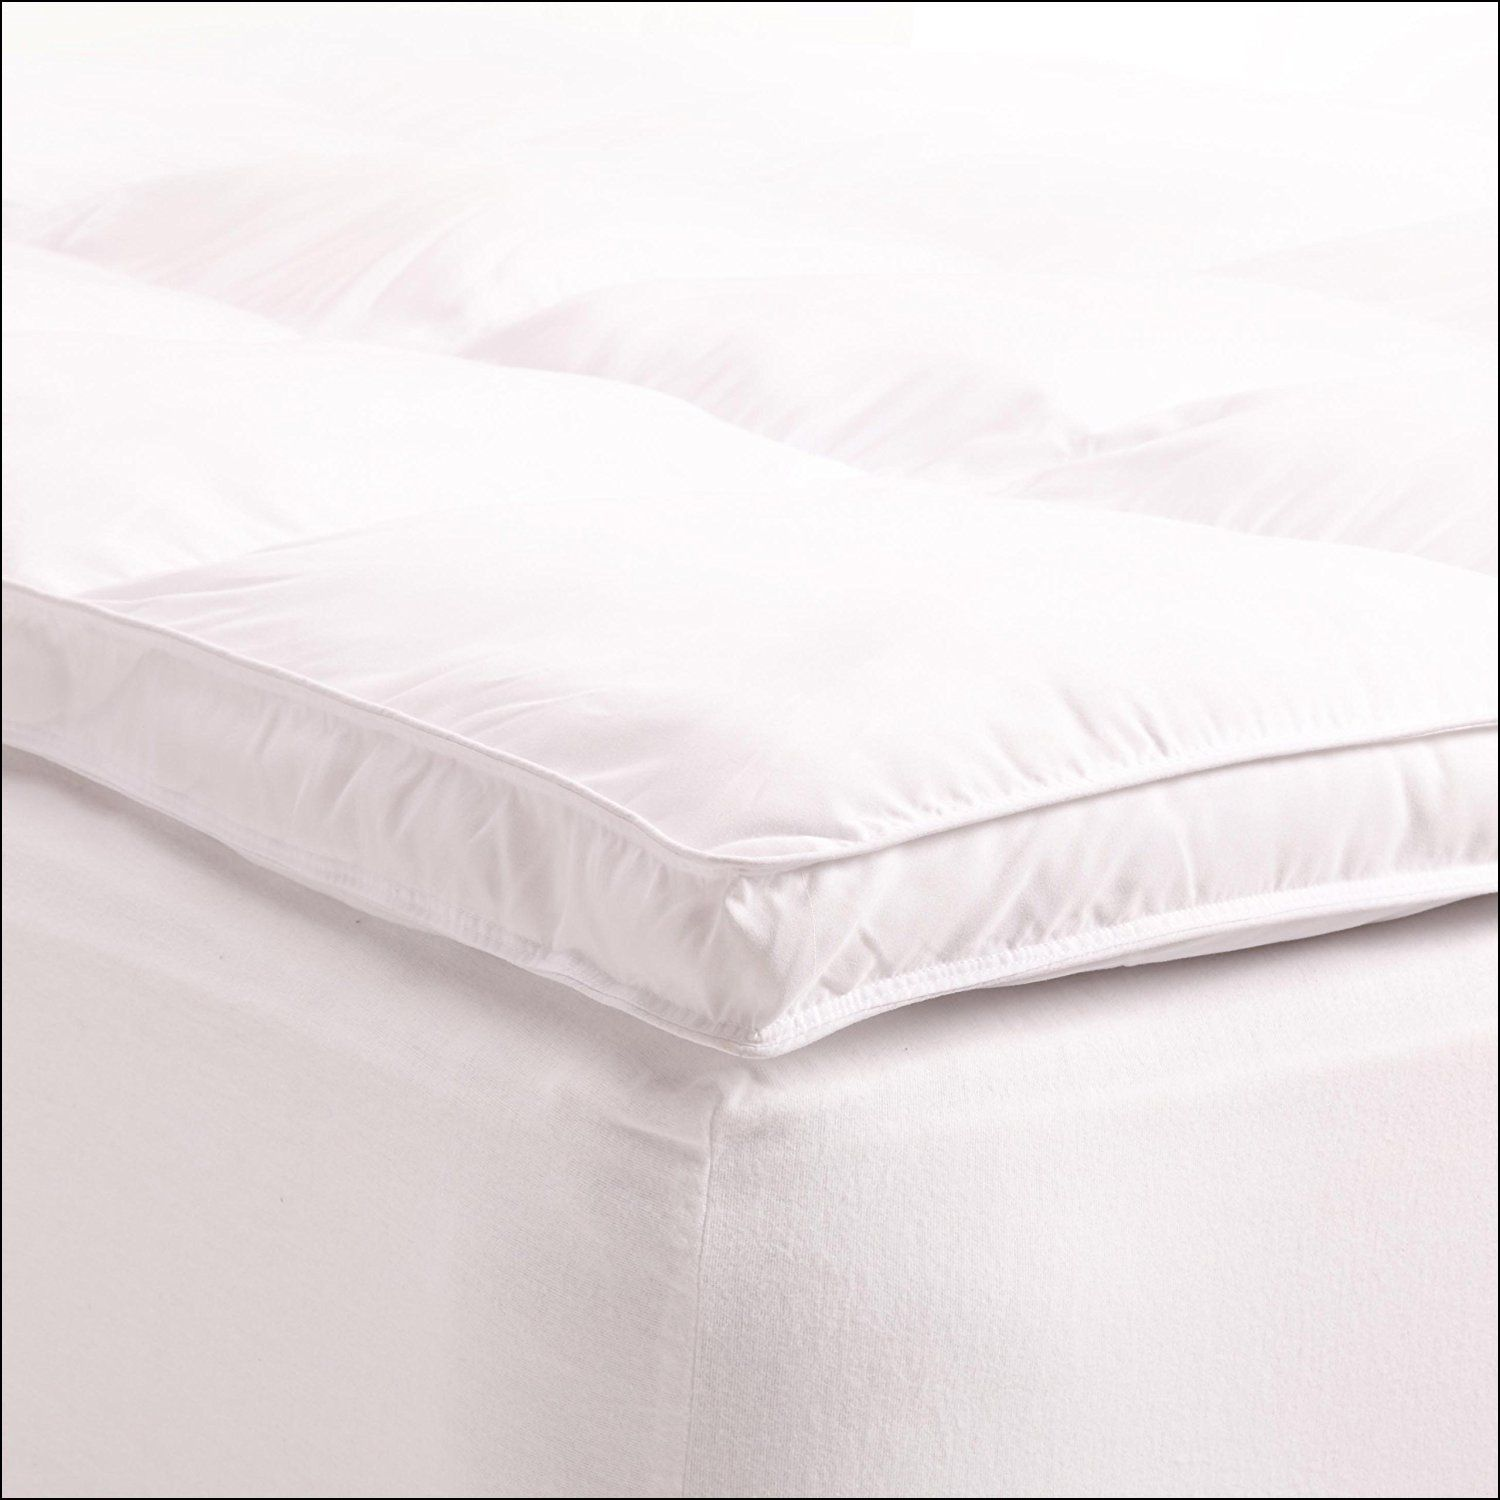 Pillow Top Mattress Covers Cool Best Pillow Top Mattress Pad For Back Pain  Mattress Ideas